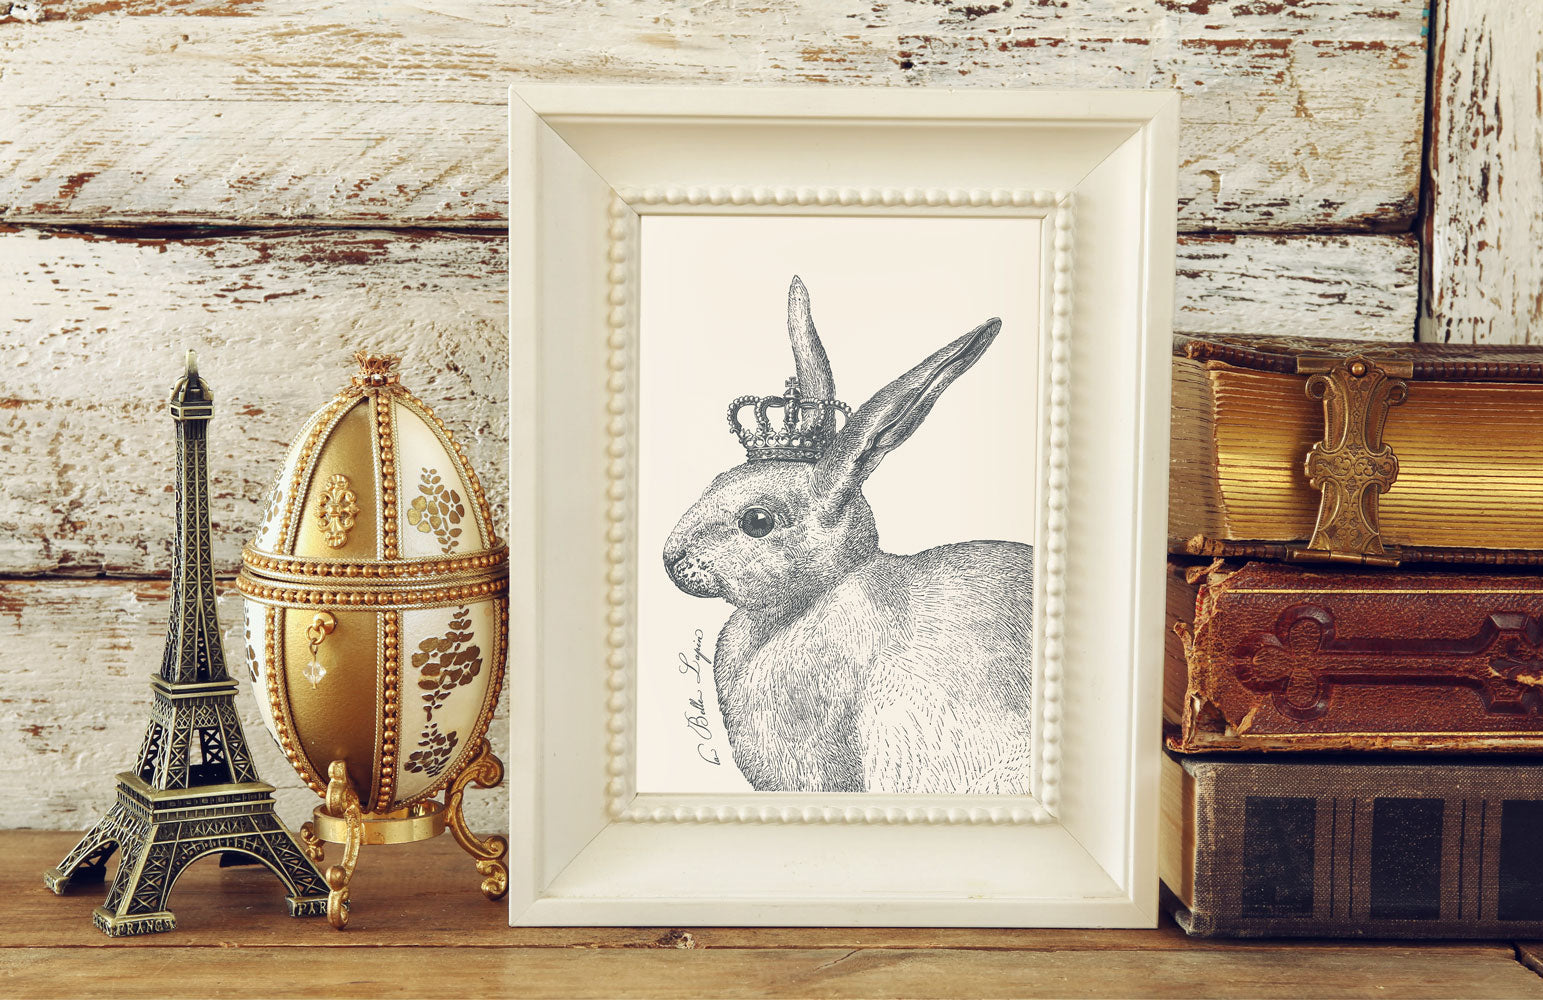 The Royal Rabbit Art Print